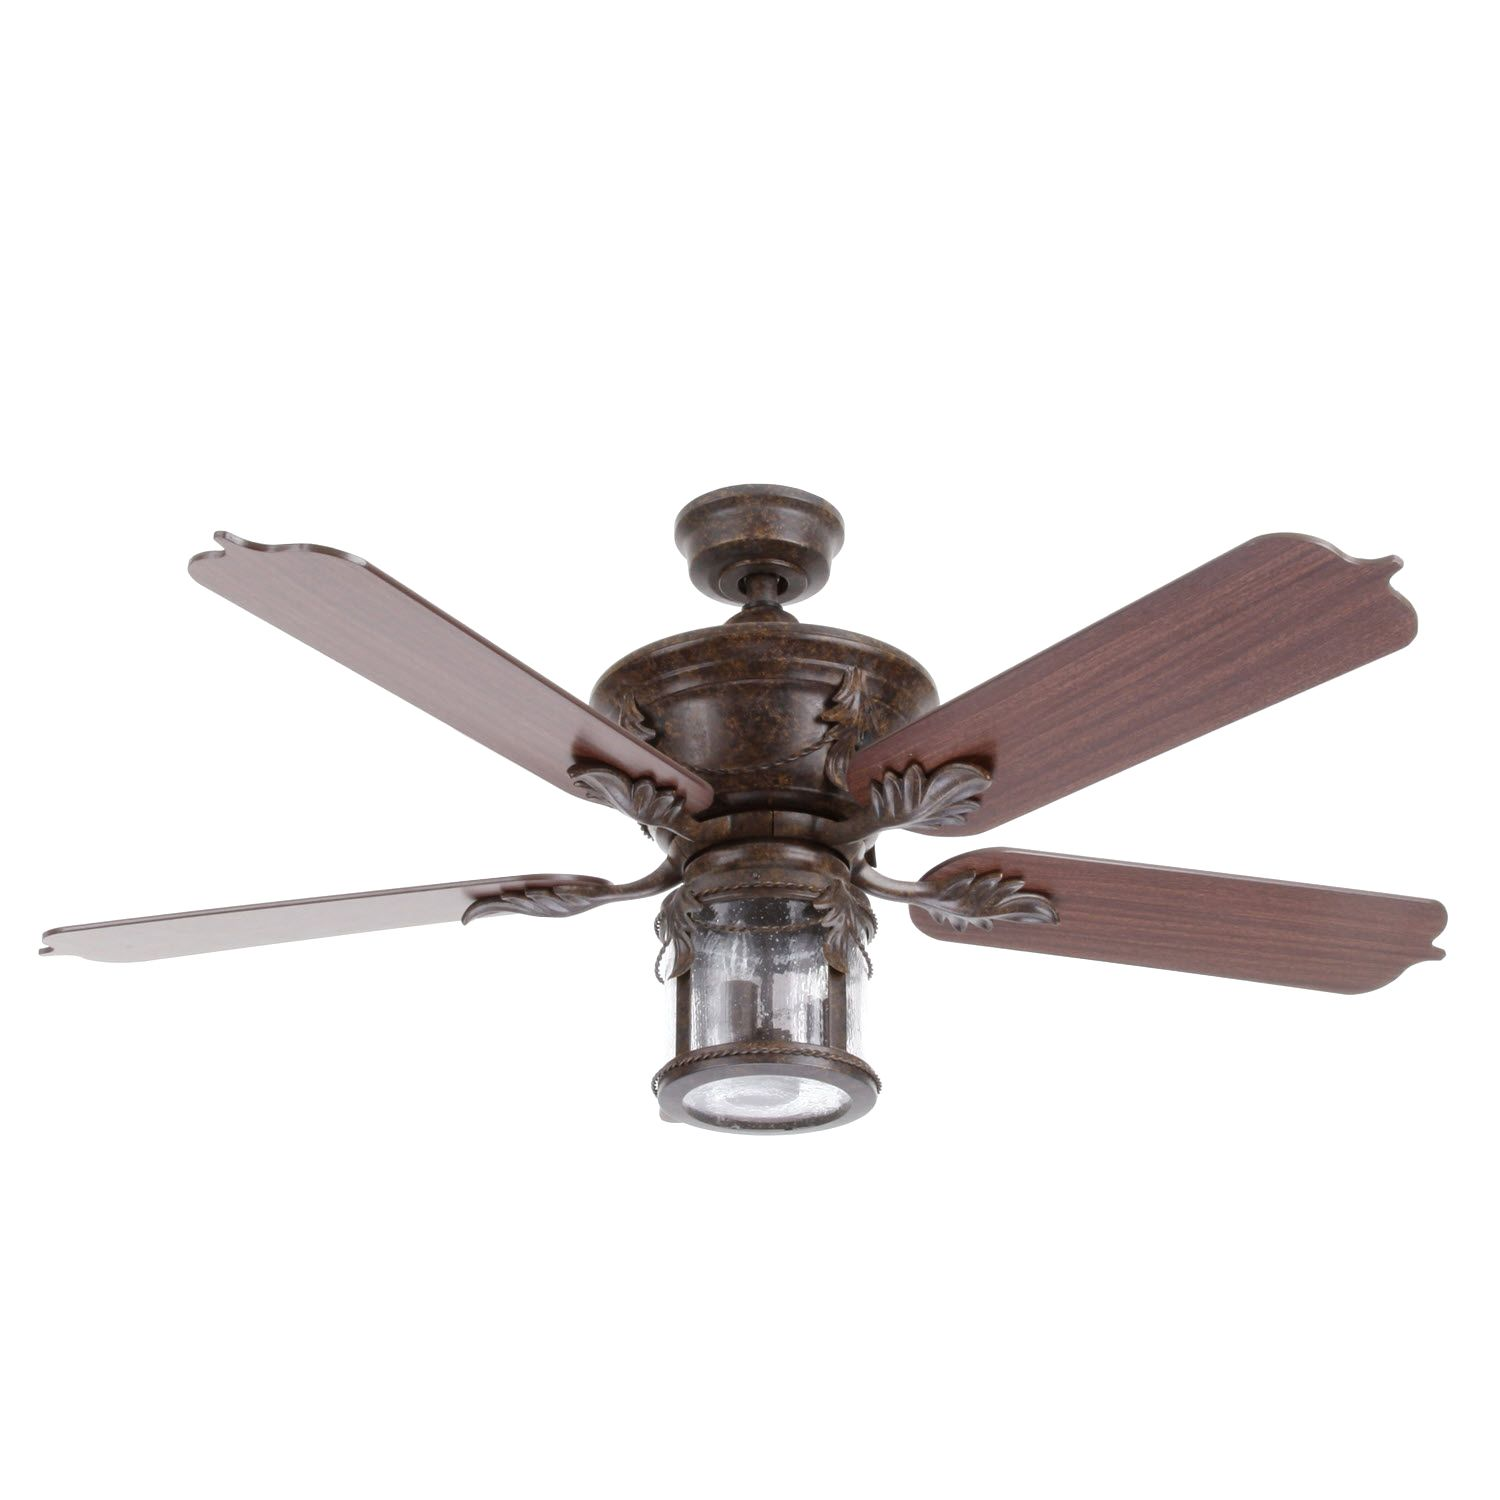 Hampton Bay Milton 52 In. Indoor/Outdoor Oxide Bronze